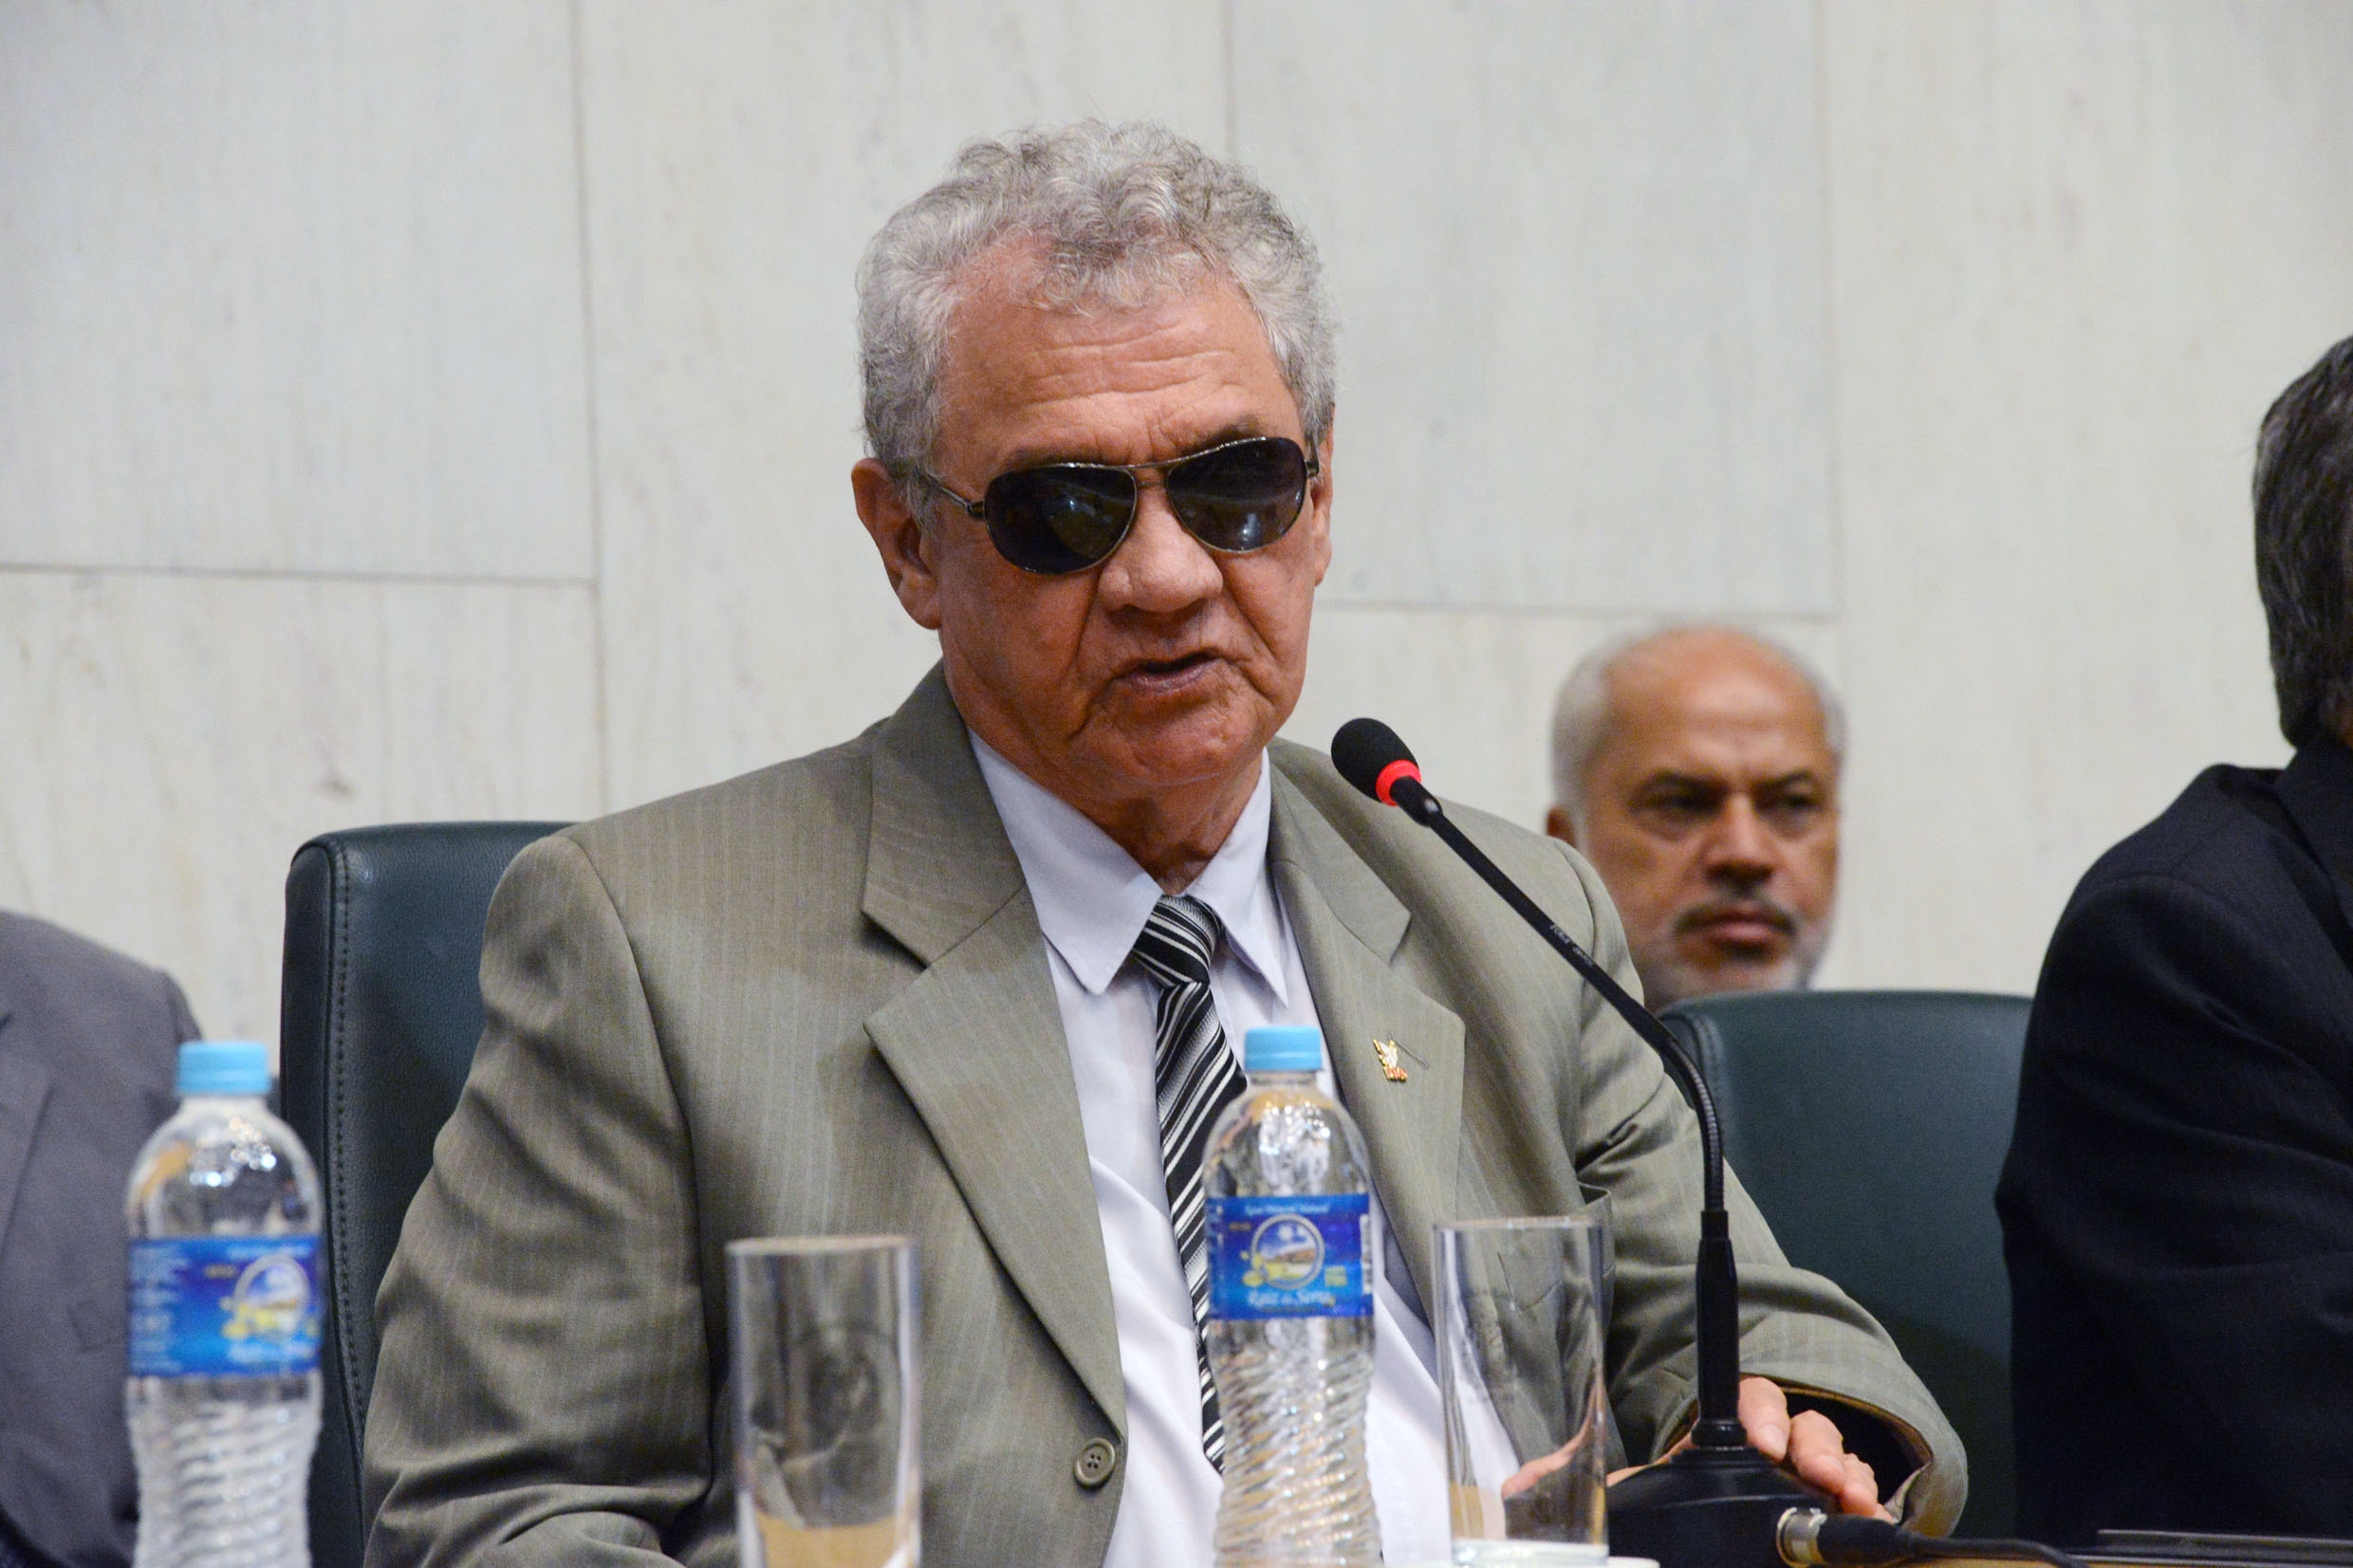 Rafael Silva<a style='float:right' href='https://www3.al.sp.gov.br/repositorio/noticia/N-05-2018/fg222428.jpg' target=_blank><img src='/_img/material-file-download-white.png' width='14px' alt='Clique para baixar a imagem'></a>